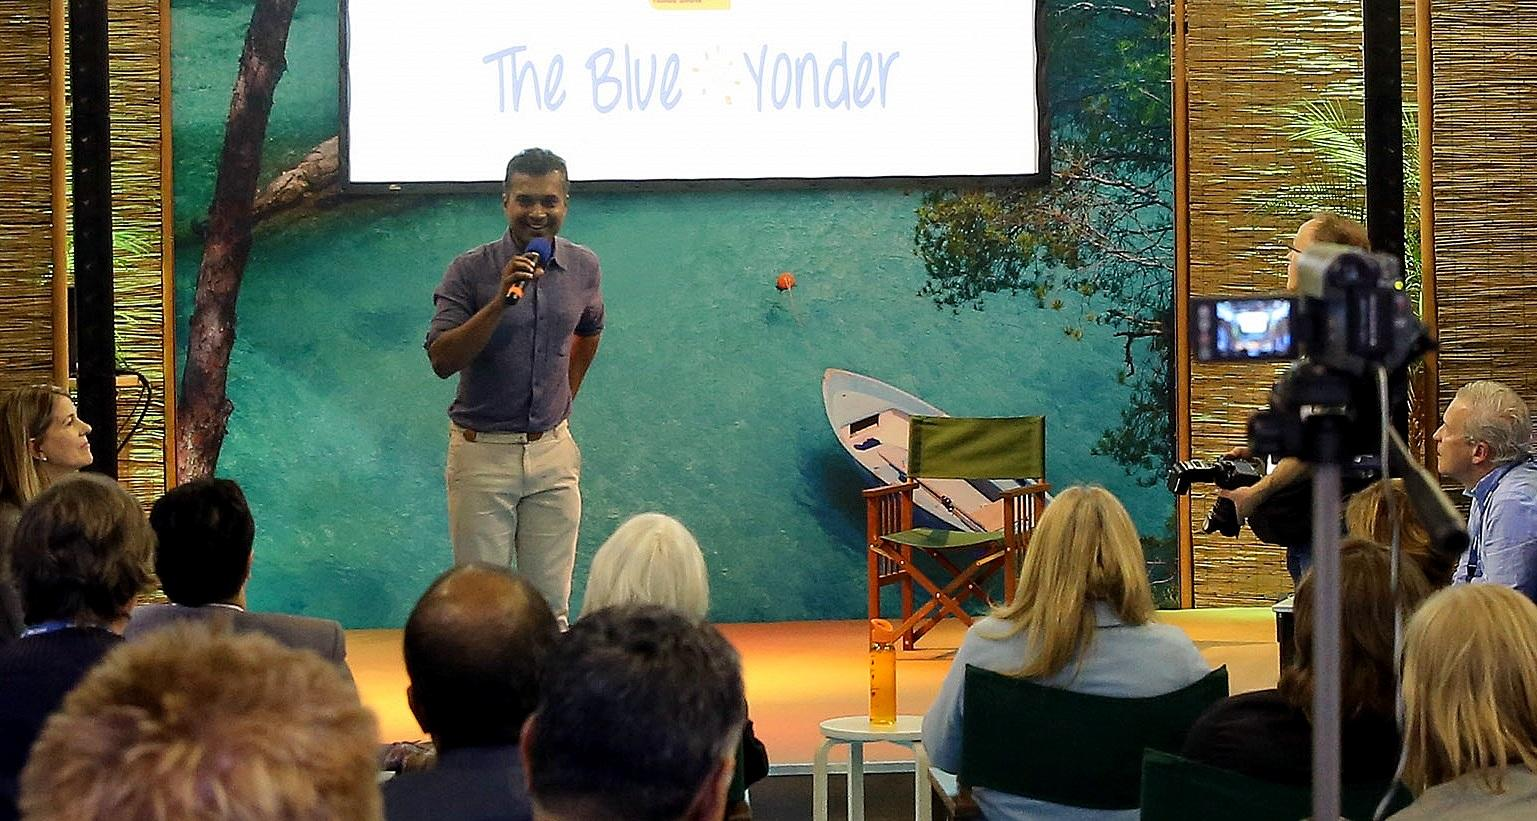 Gopinath Parayil of The Blue Yonder at ITB Berlin